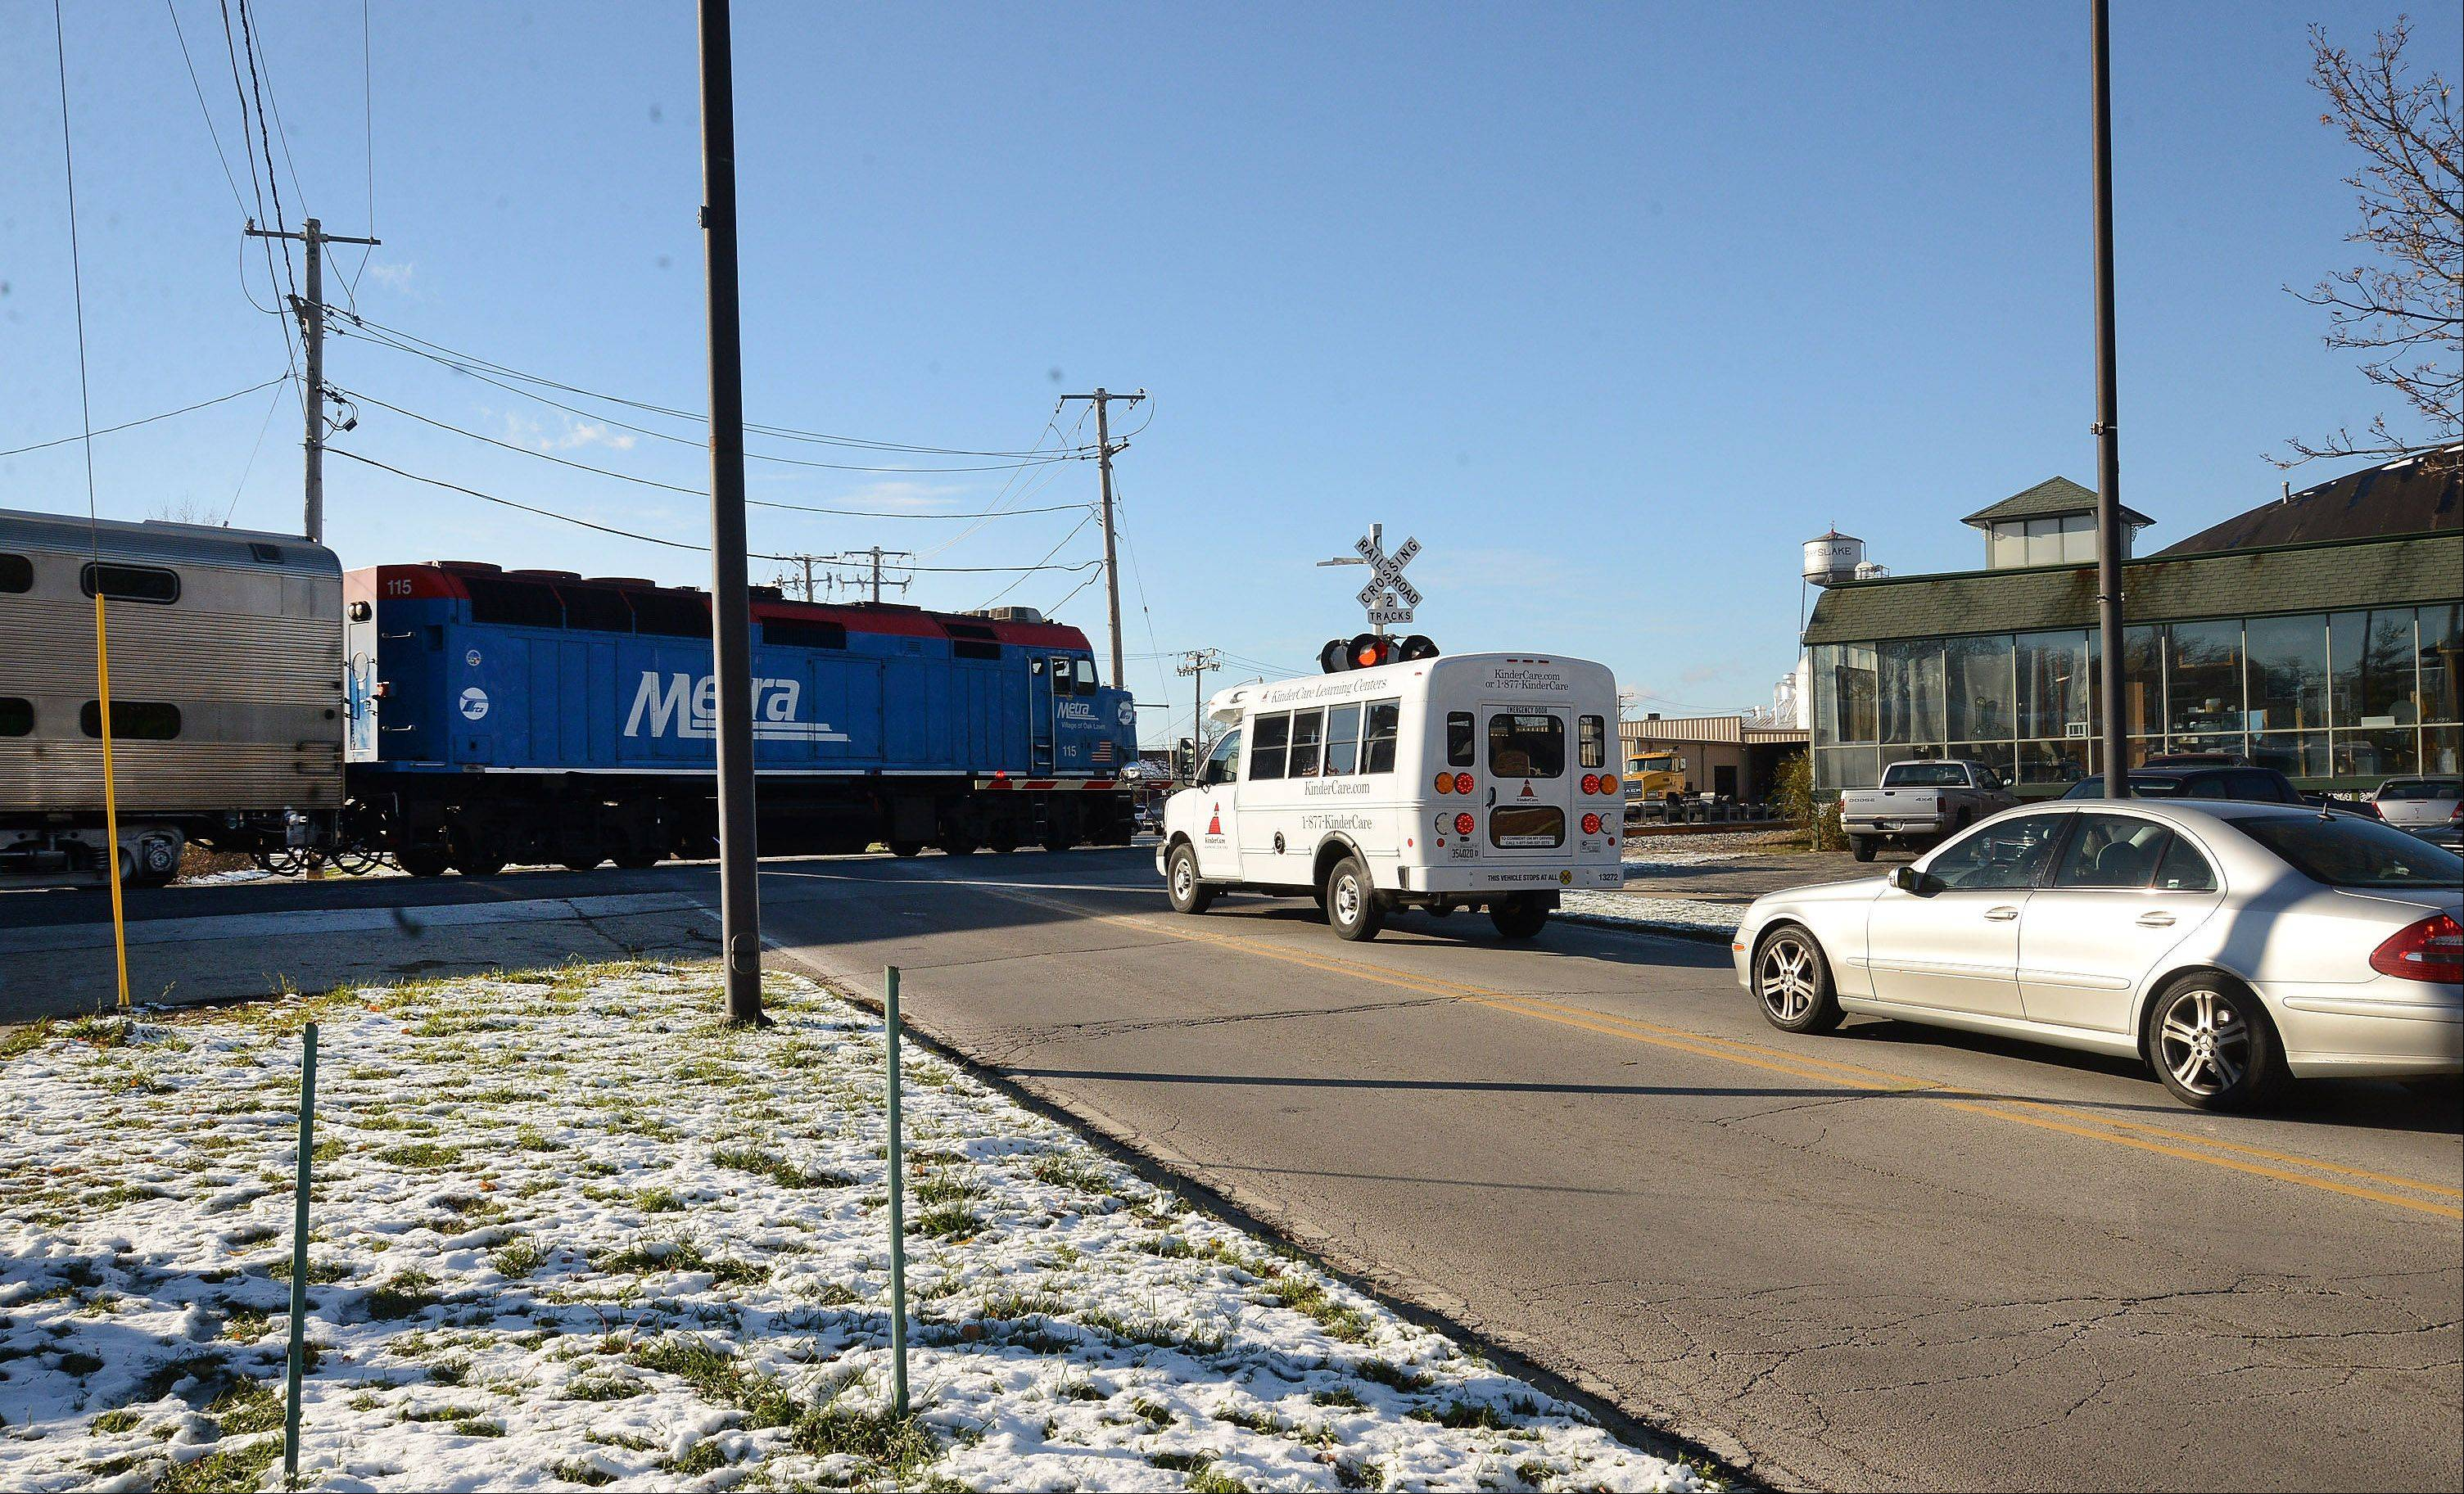 A Metra commuter train passes through downtown Grayslake as traffic backs up along Center Street. Village officials are urging residents to contact state and federal lawmakers for help in dealing with long traffic delays caused by train stoppages.